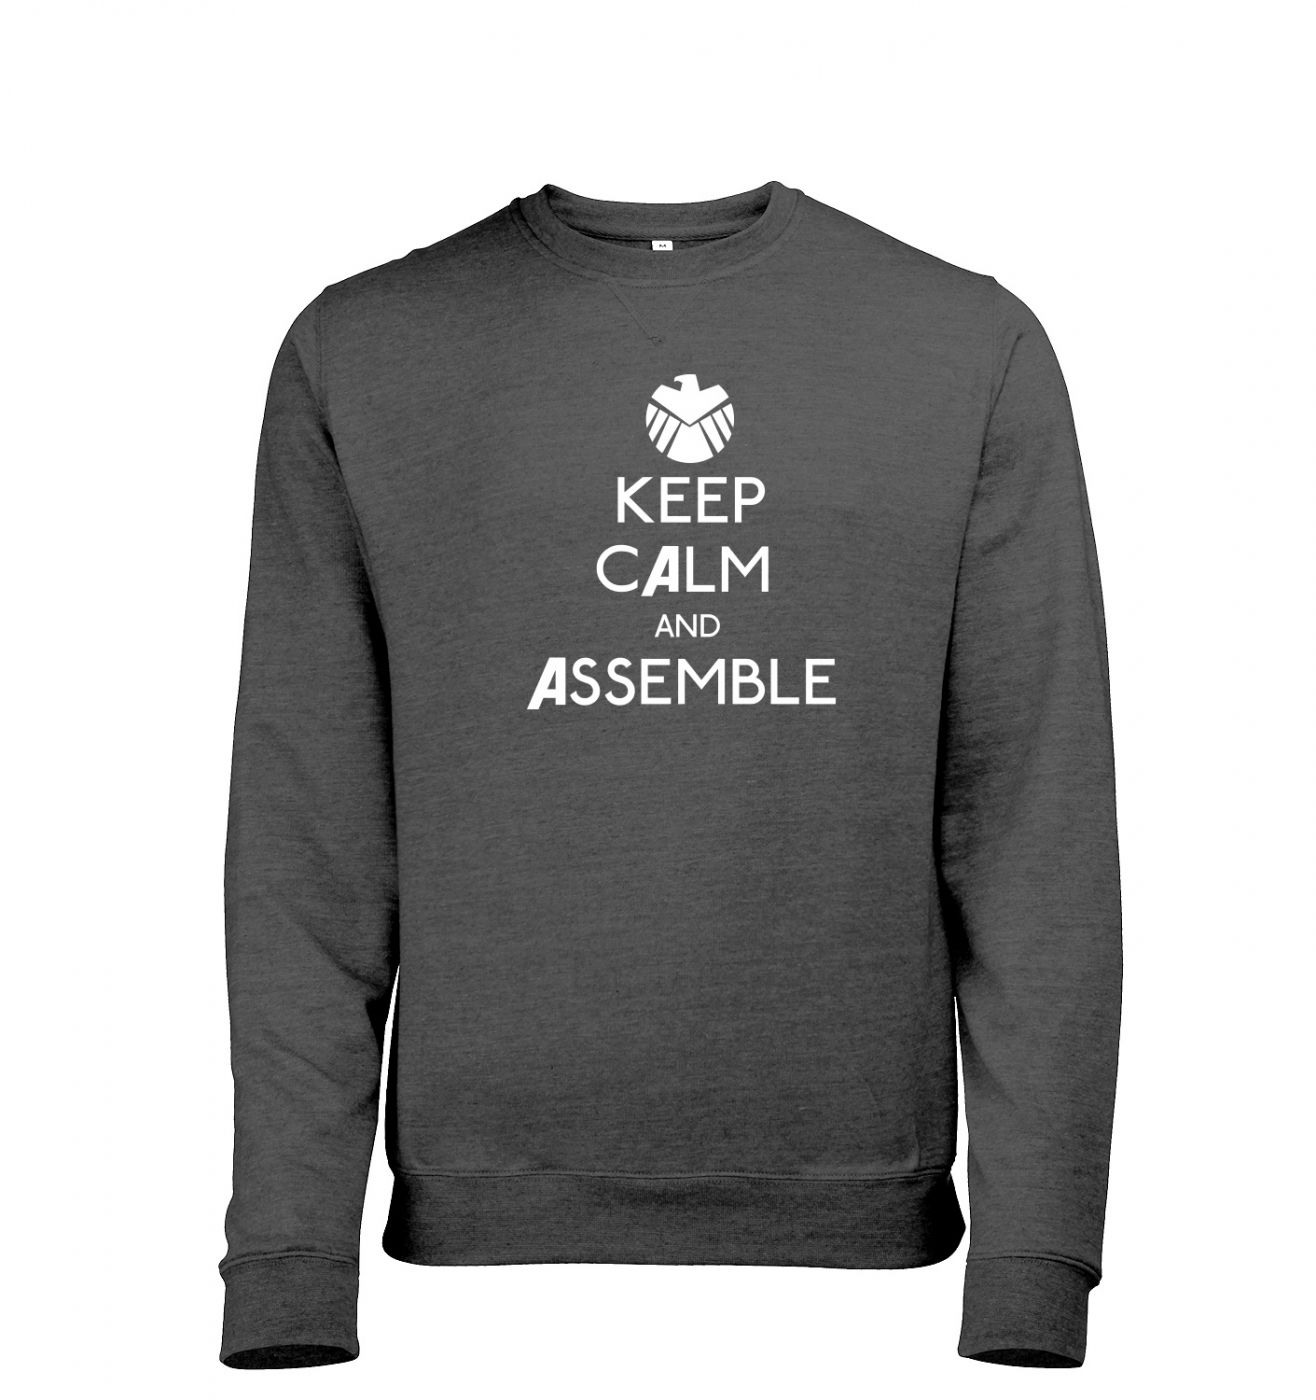 Keep Calm and Assemble heather sweatshirt